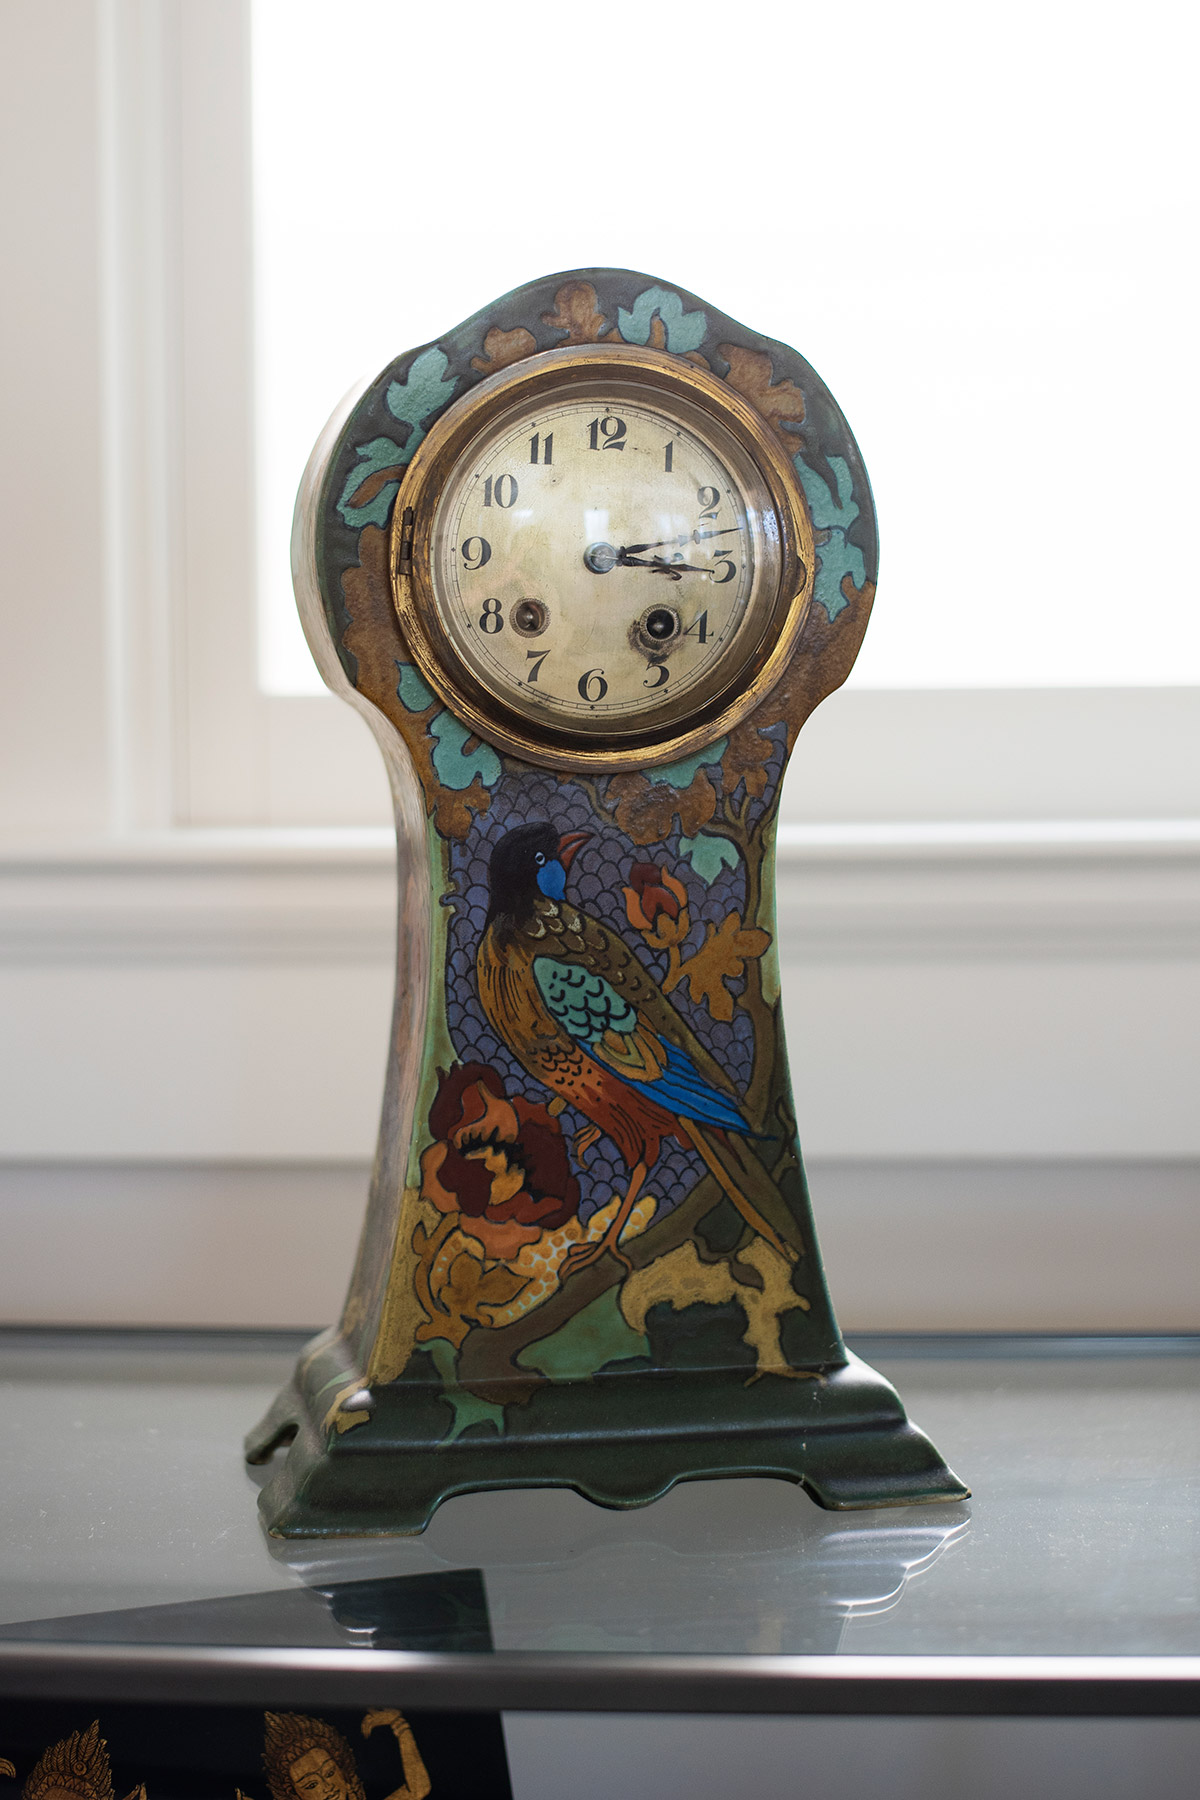 Antique painted clock with image of bird